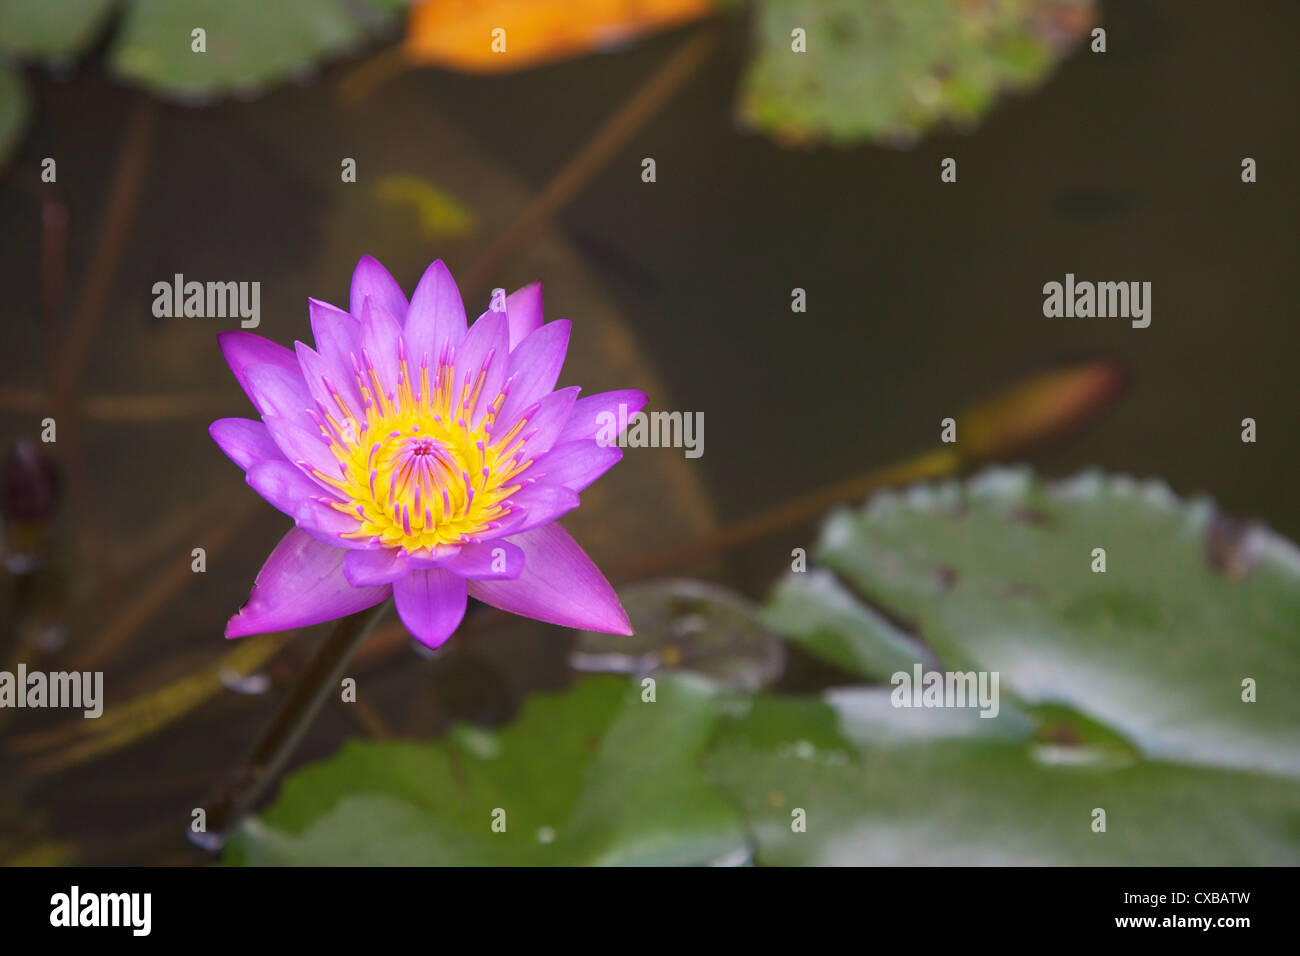 Blue Star Water Lily Blue Lotus Flower Nymphaea Stellata Stock